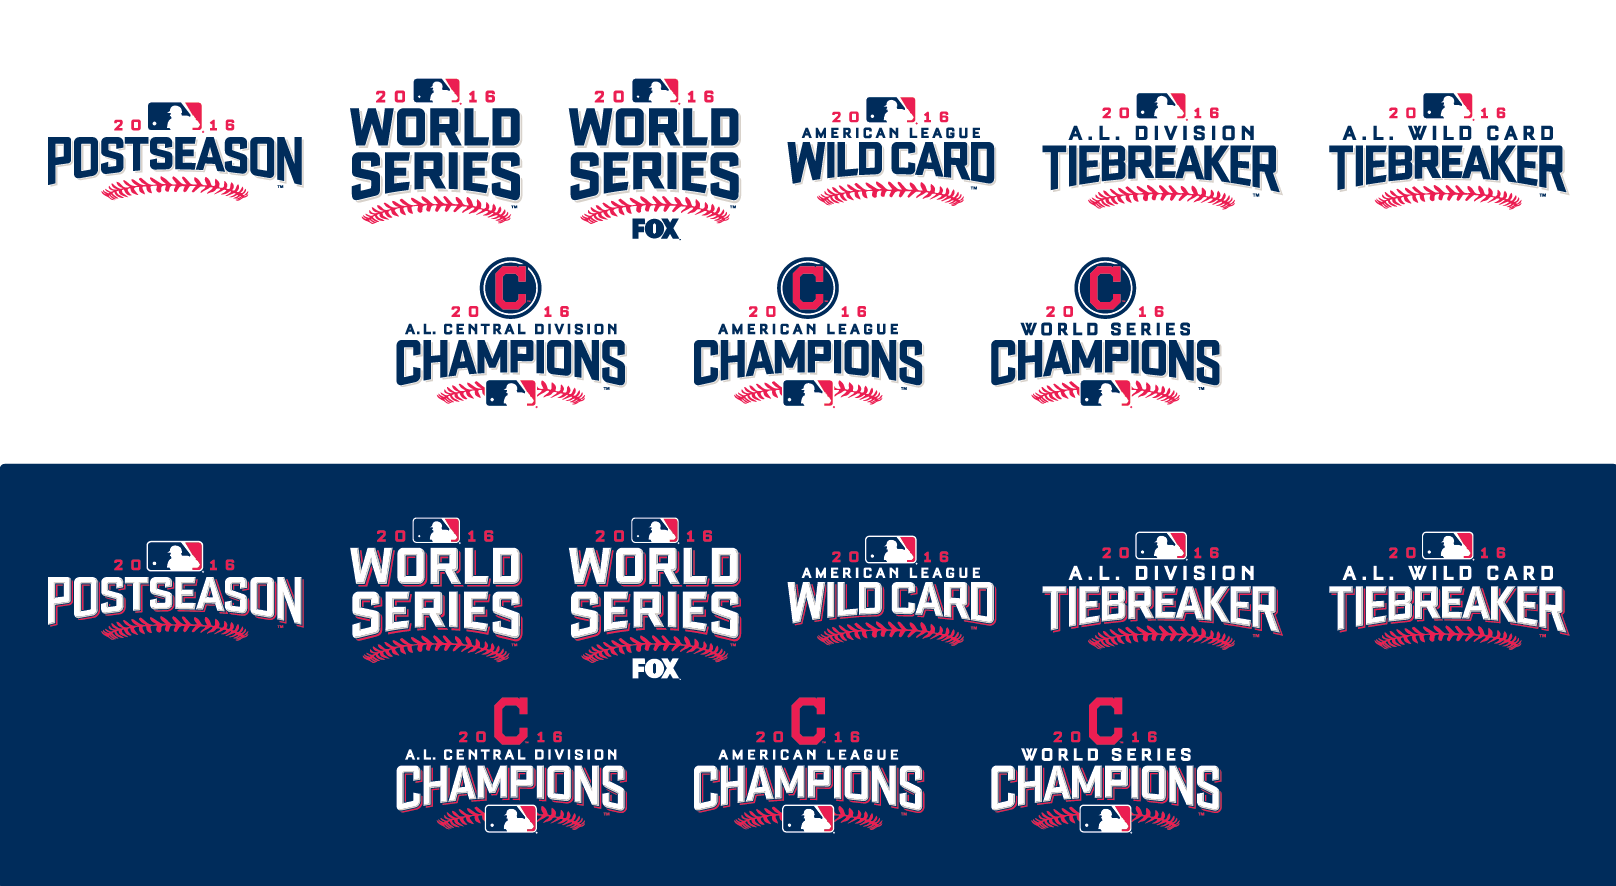 WS16_ChampionsMarks_Cleveland_Indians.jpg